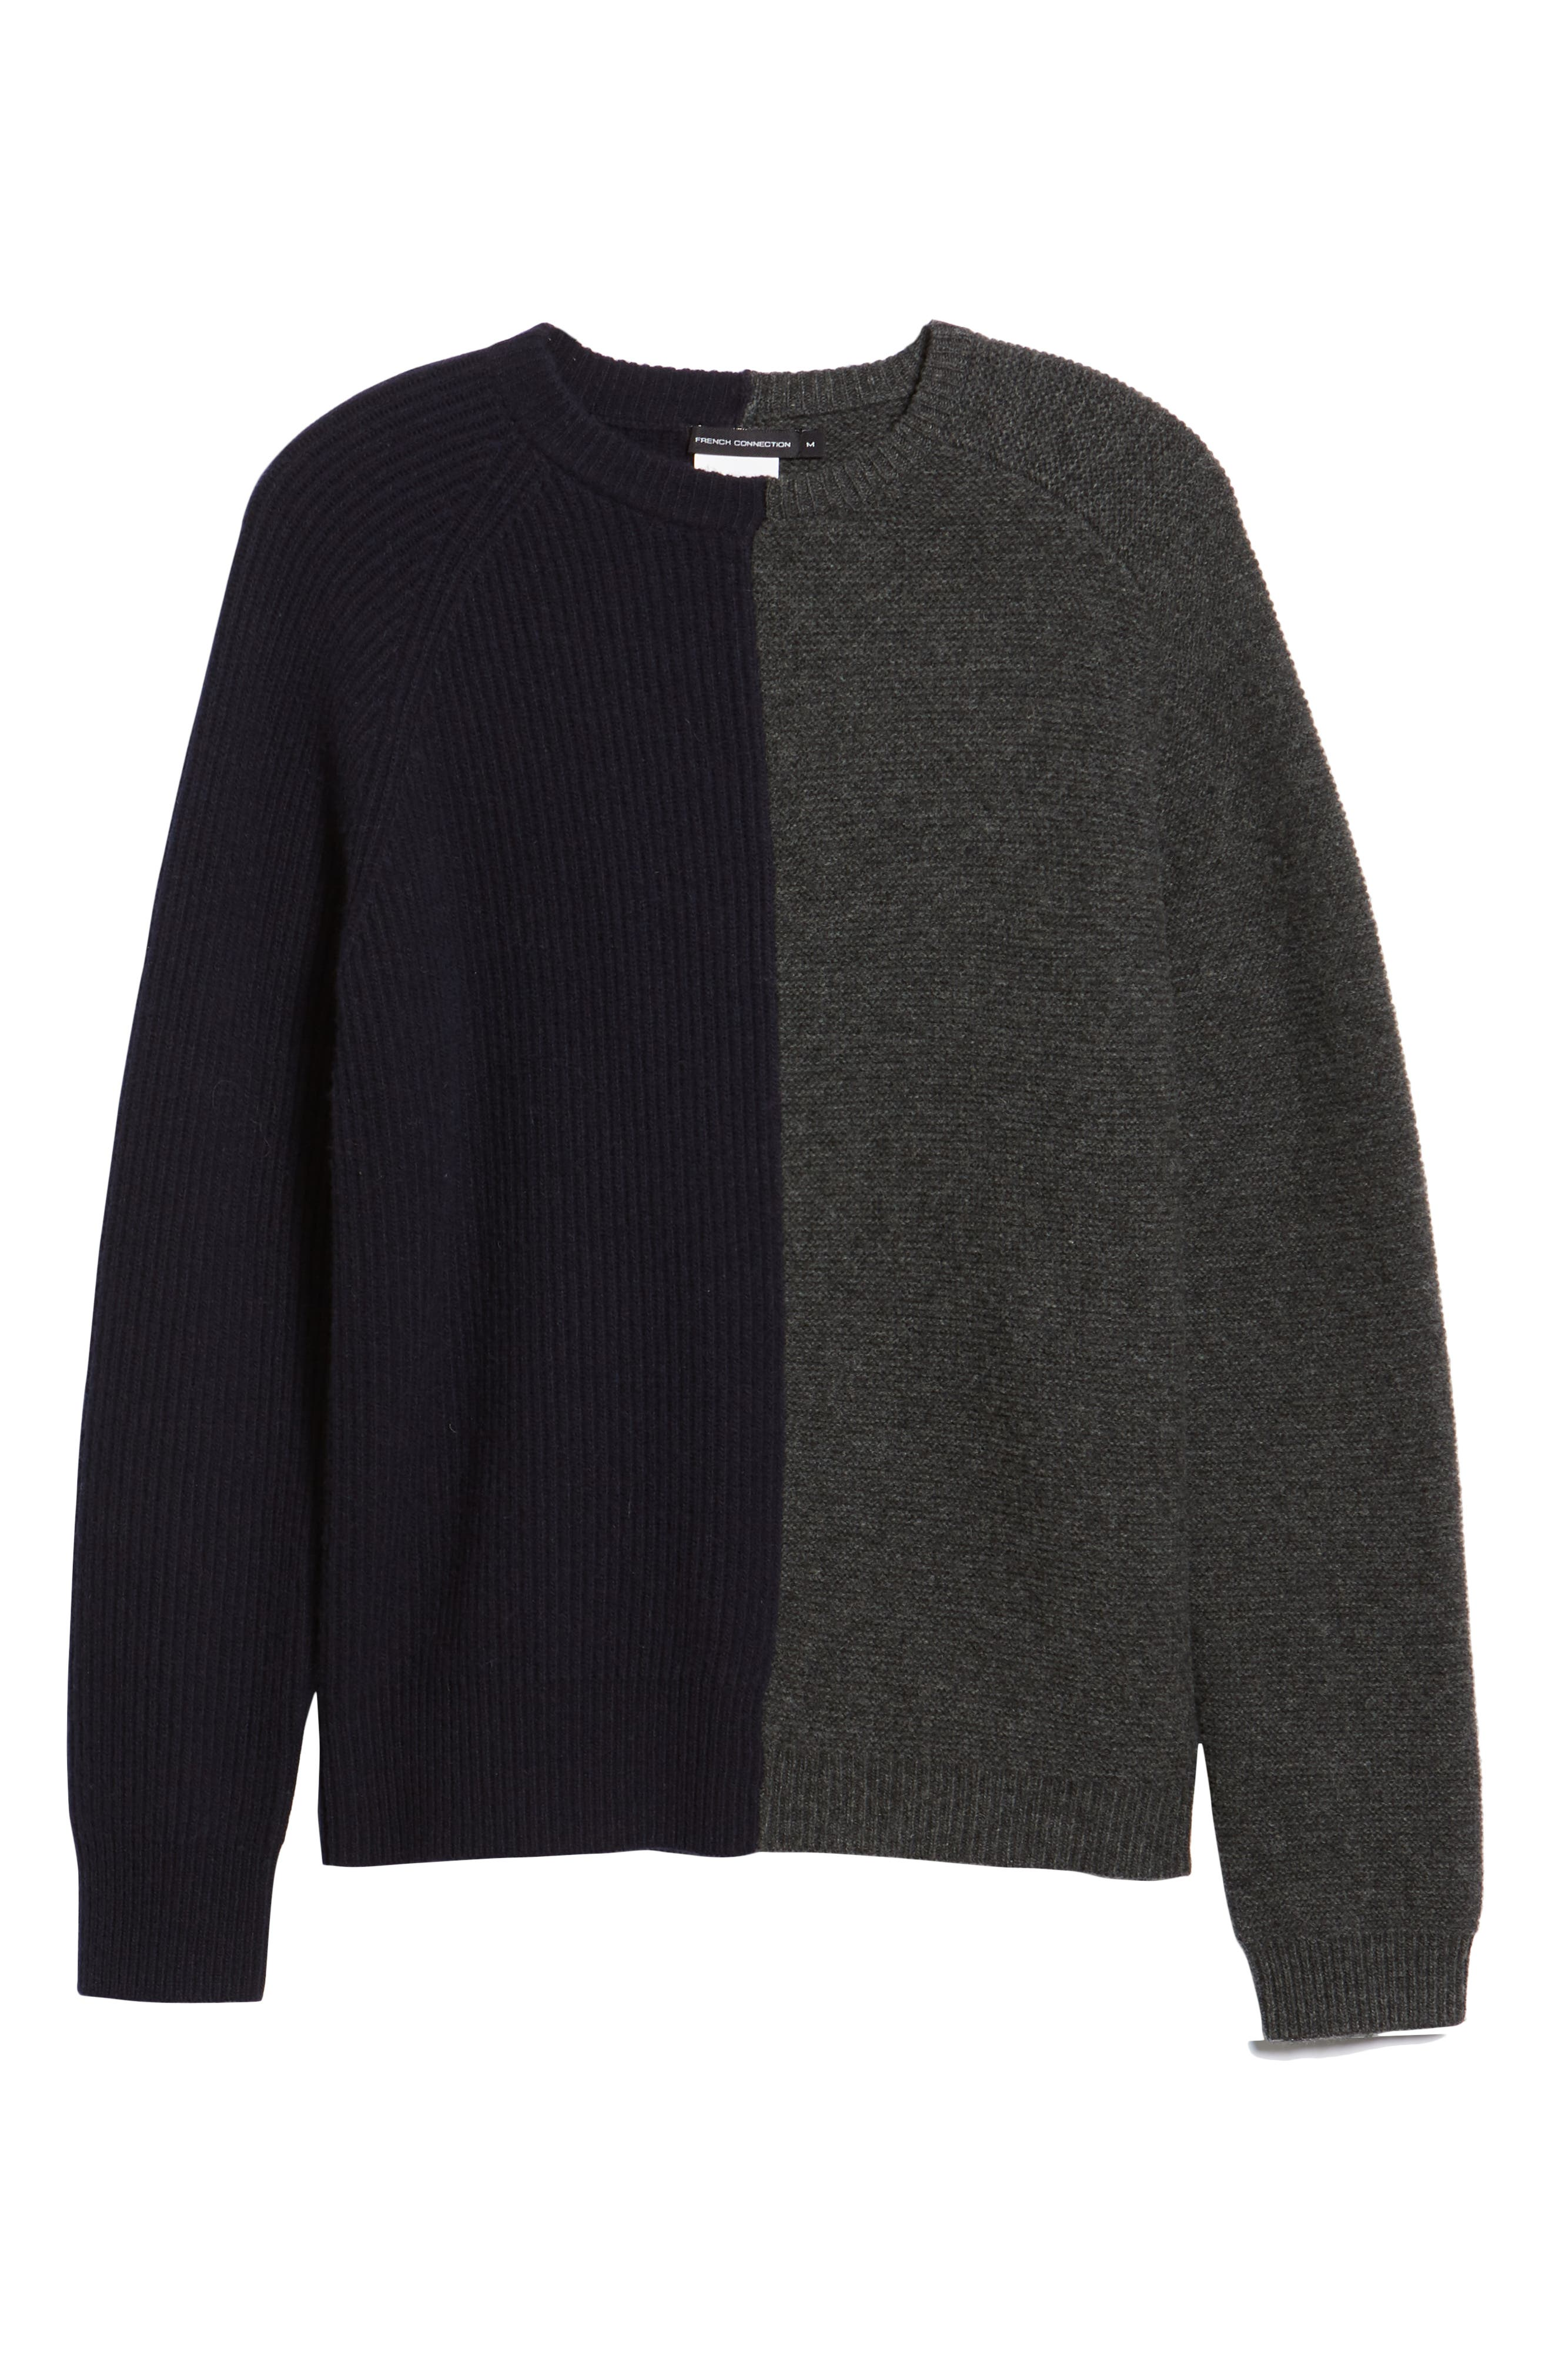 Mixed Texture Wool Blend Sweater,                             Alternate thumbnail 6, color,                             UTILITY BLUE CHARCOAL MELANGE